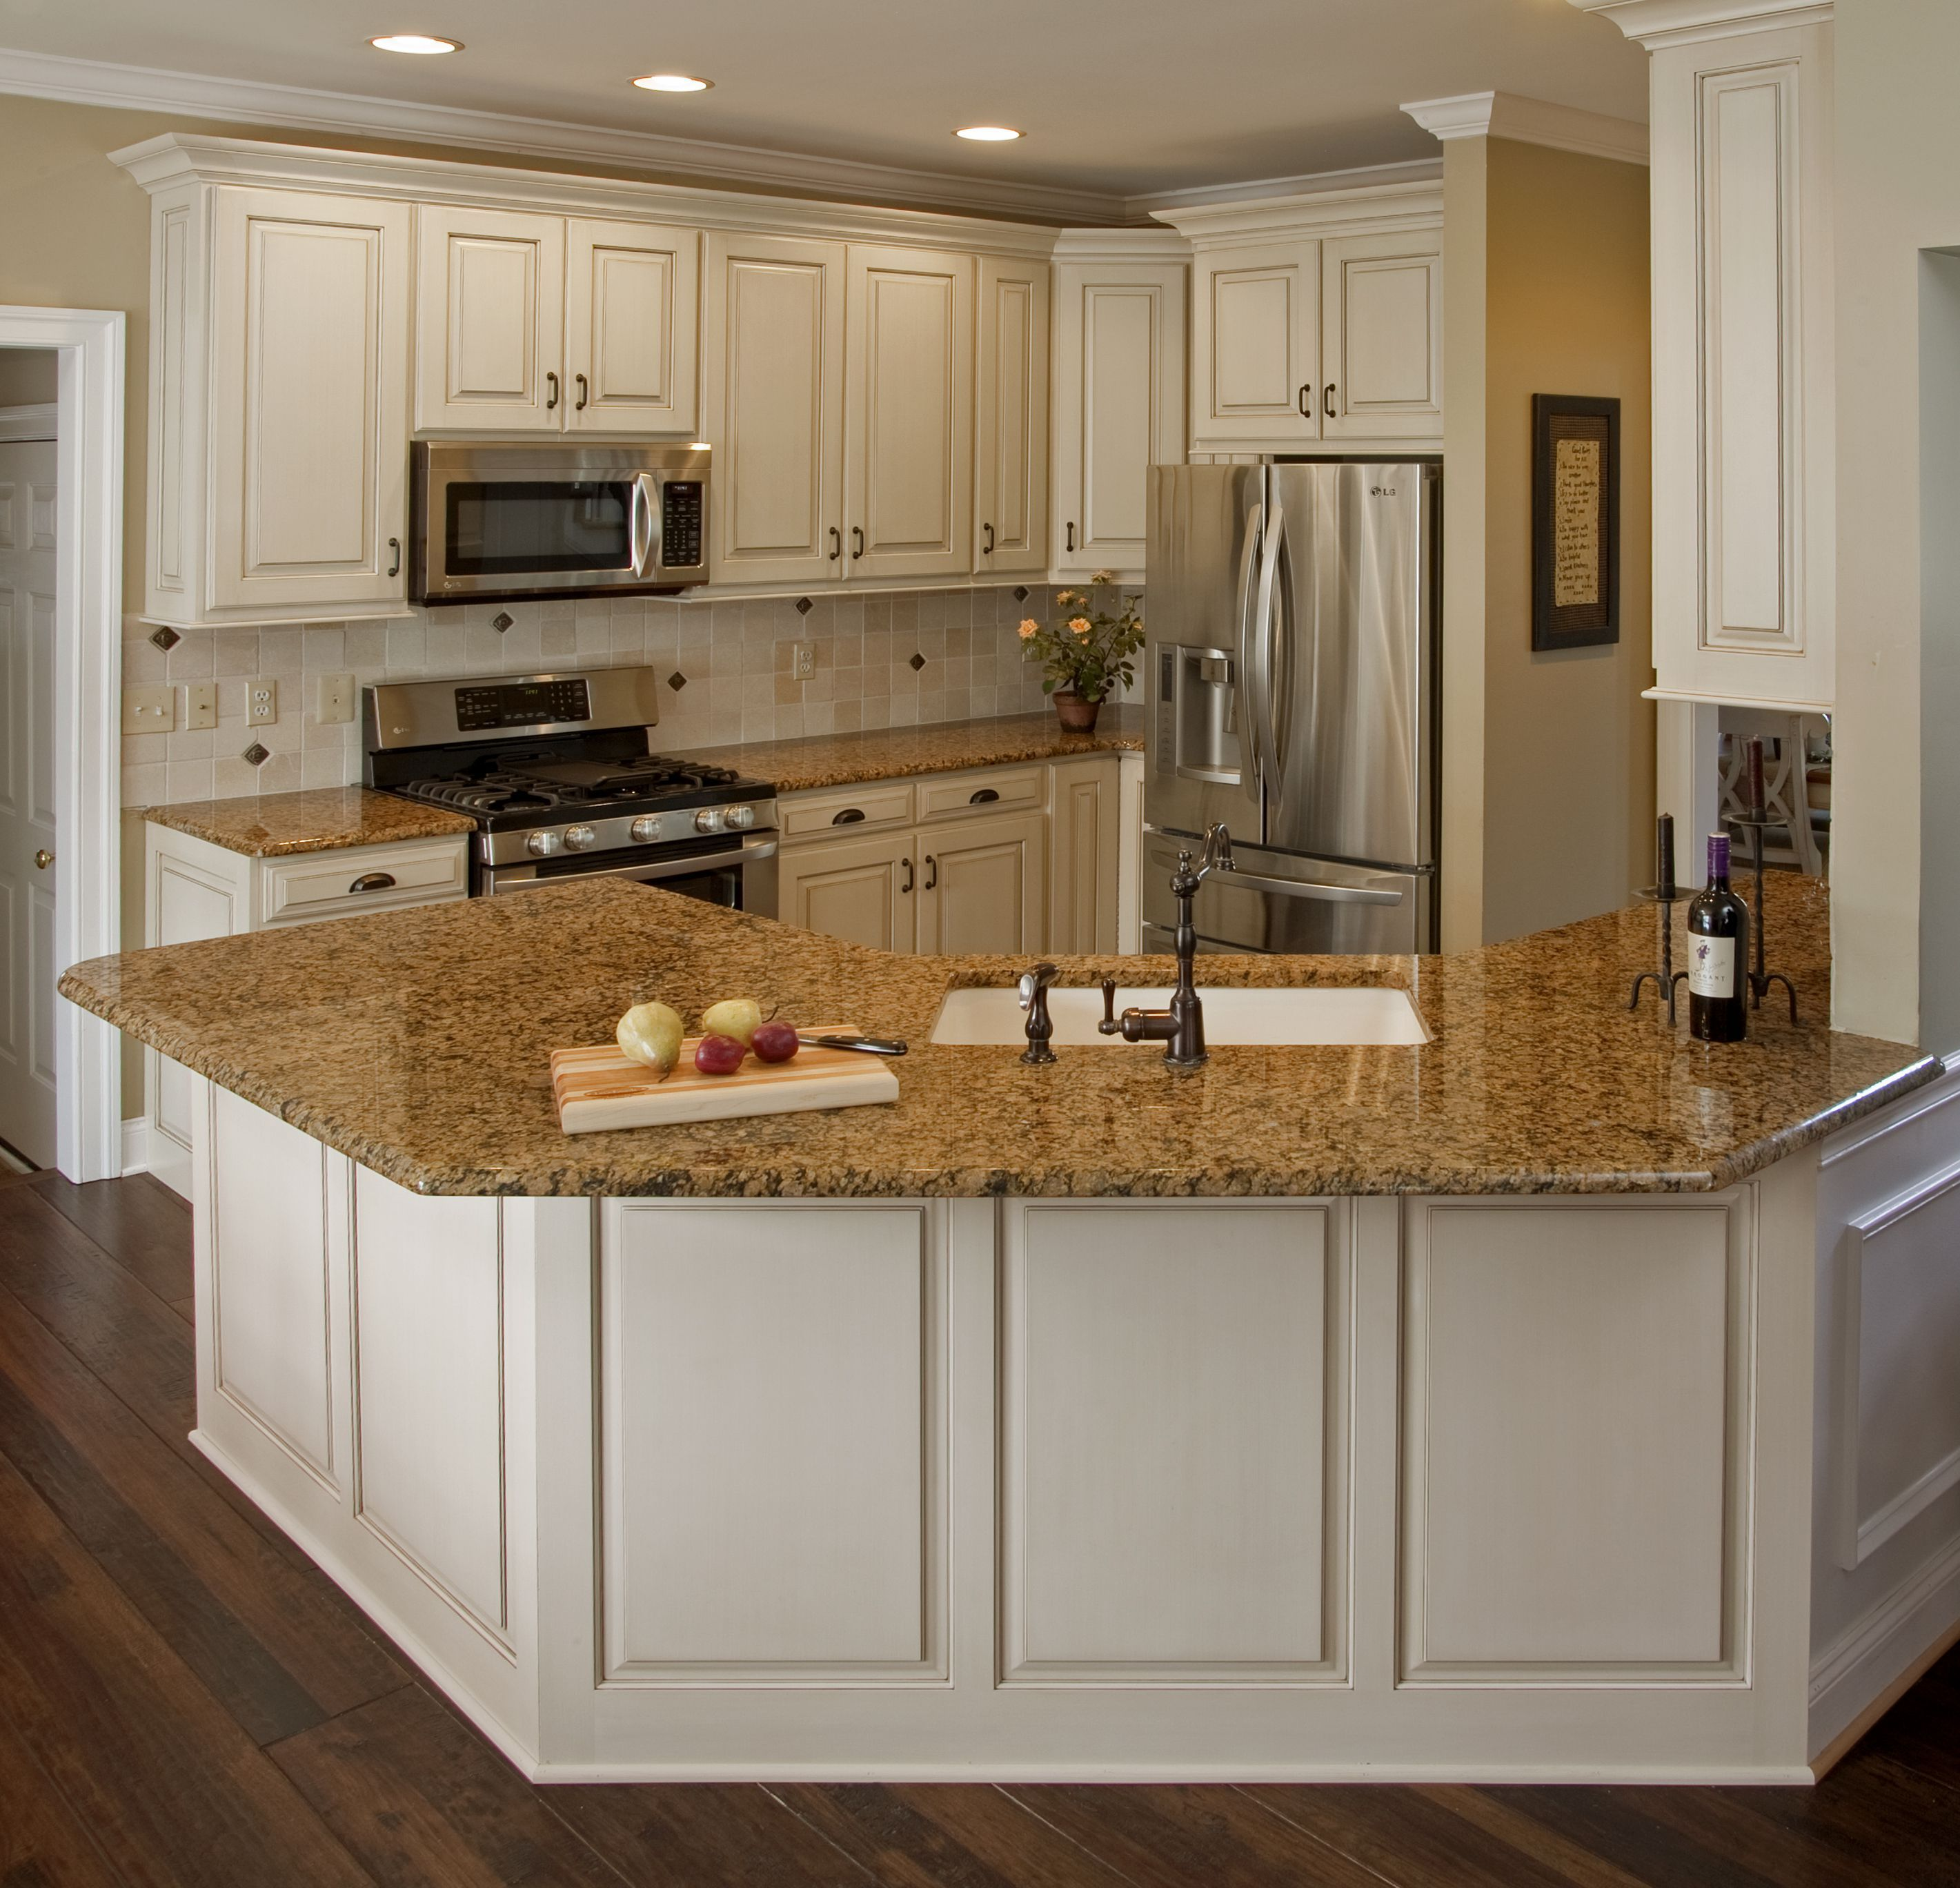 of also depot refacing home full cabinets kitchen size cost cabinet